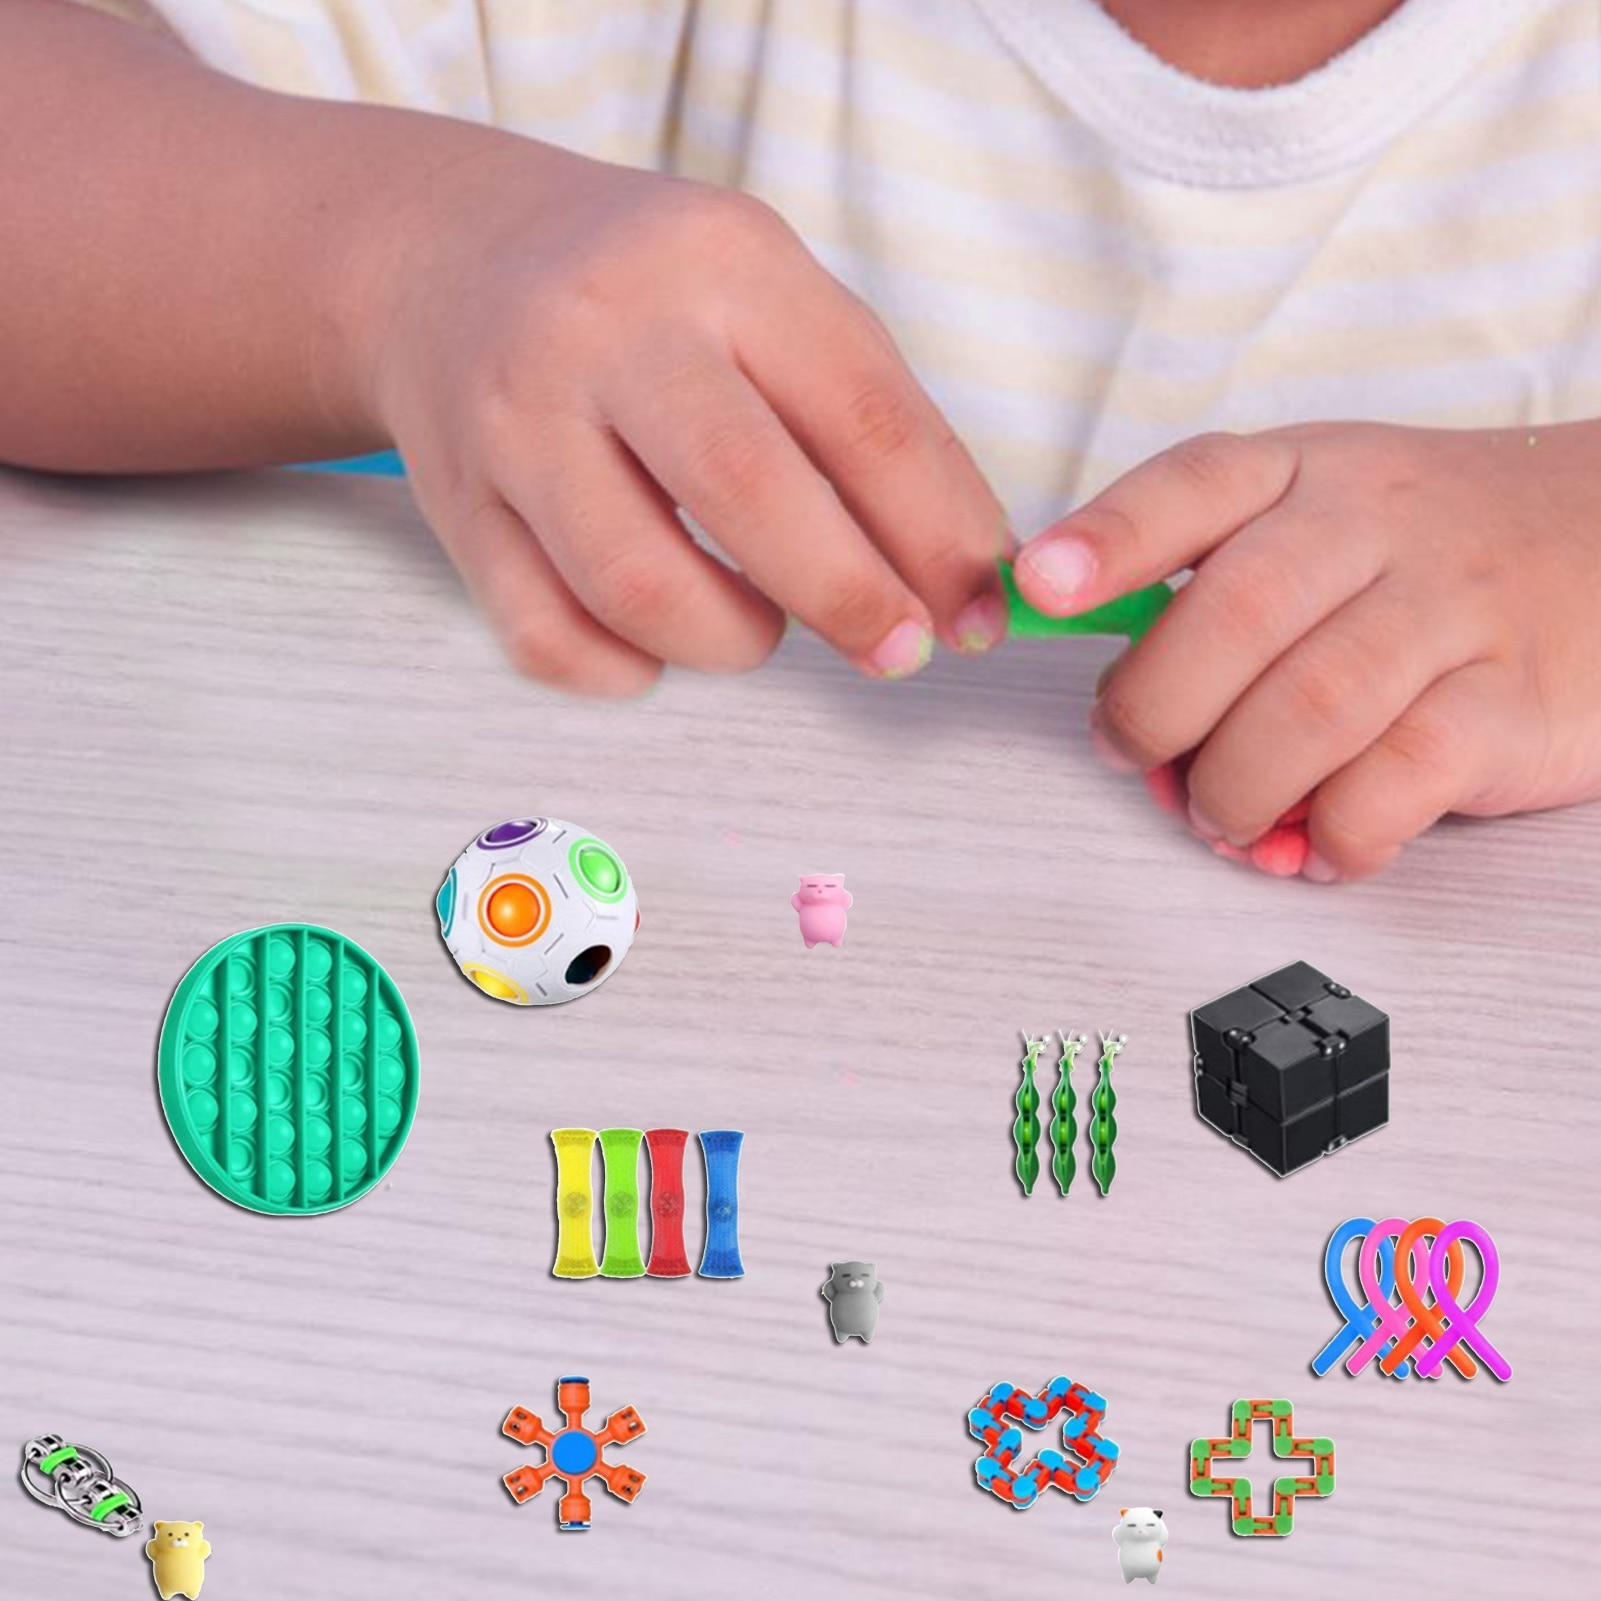 24Pcs Sensory Squeeze Toys Autism Squishy Stress Reliever Toys For Children And Adults Funny Anti-Stress Pops Bubble Fidget Toys enlarge